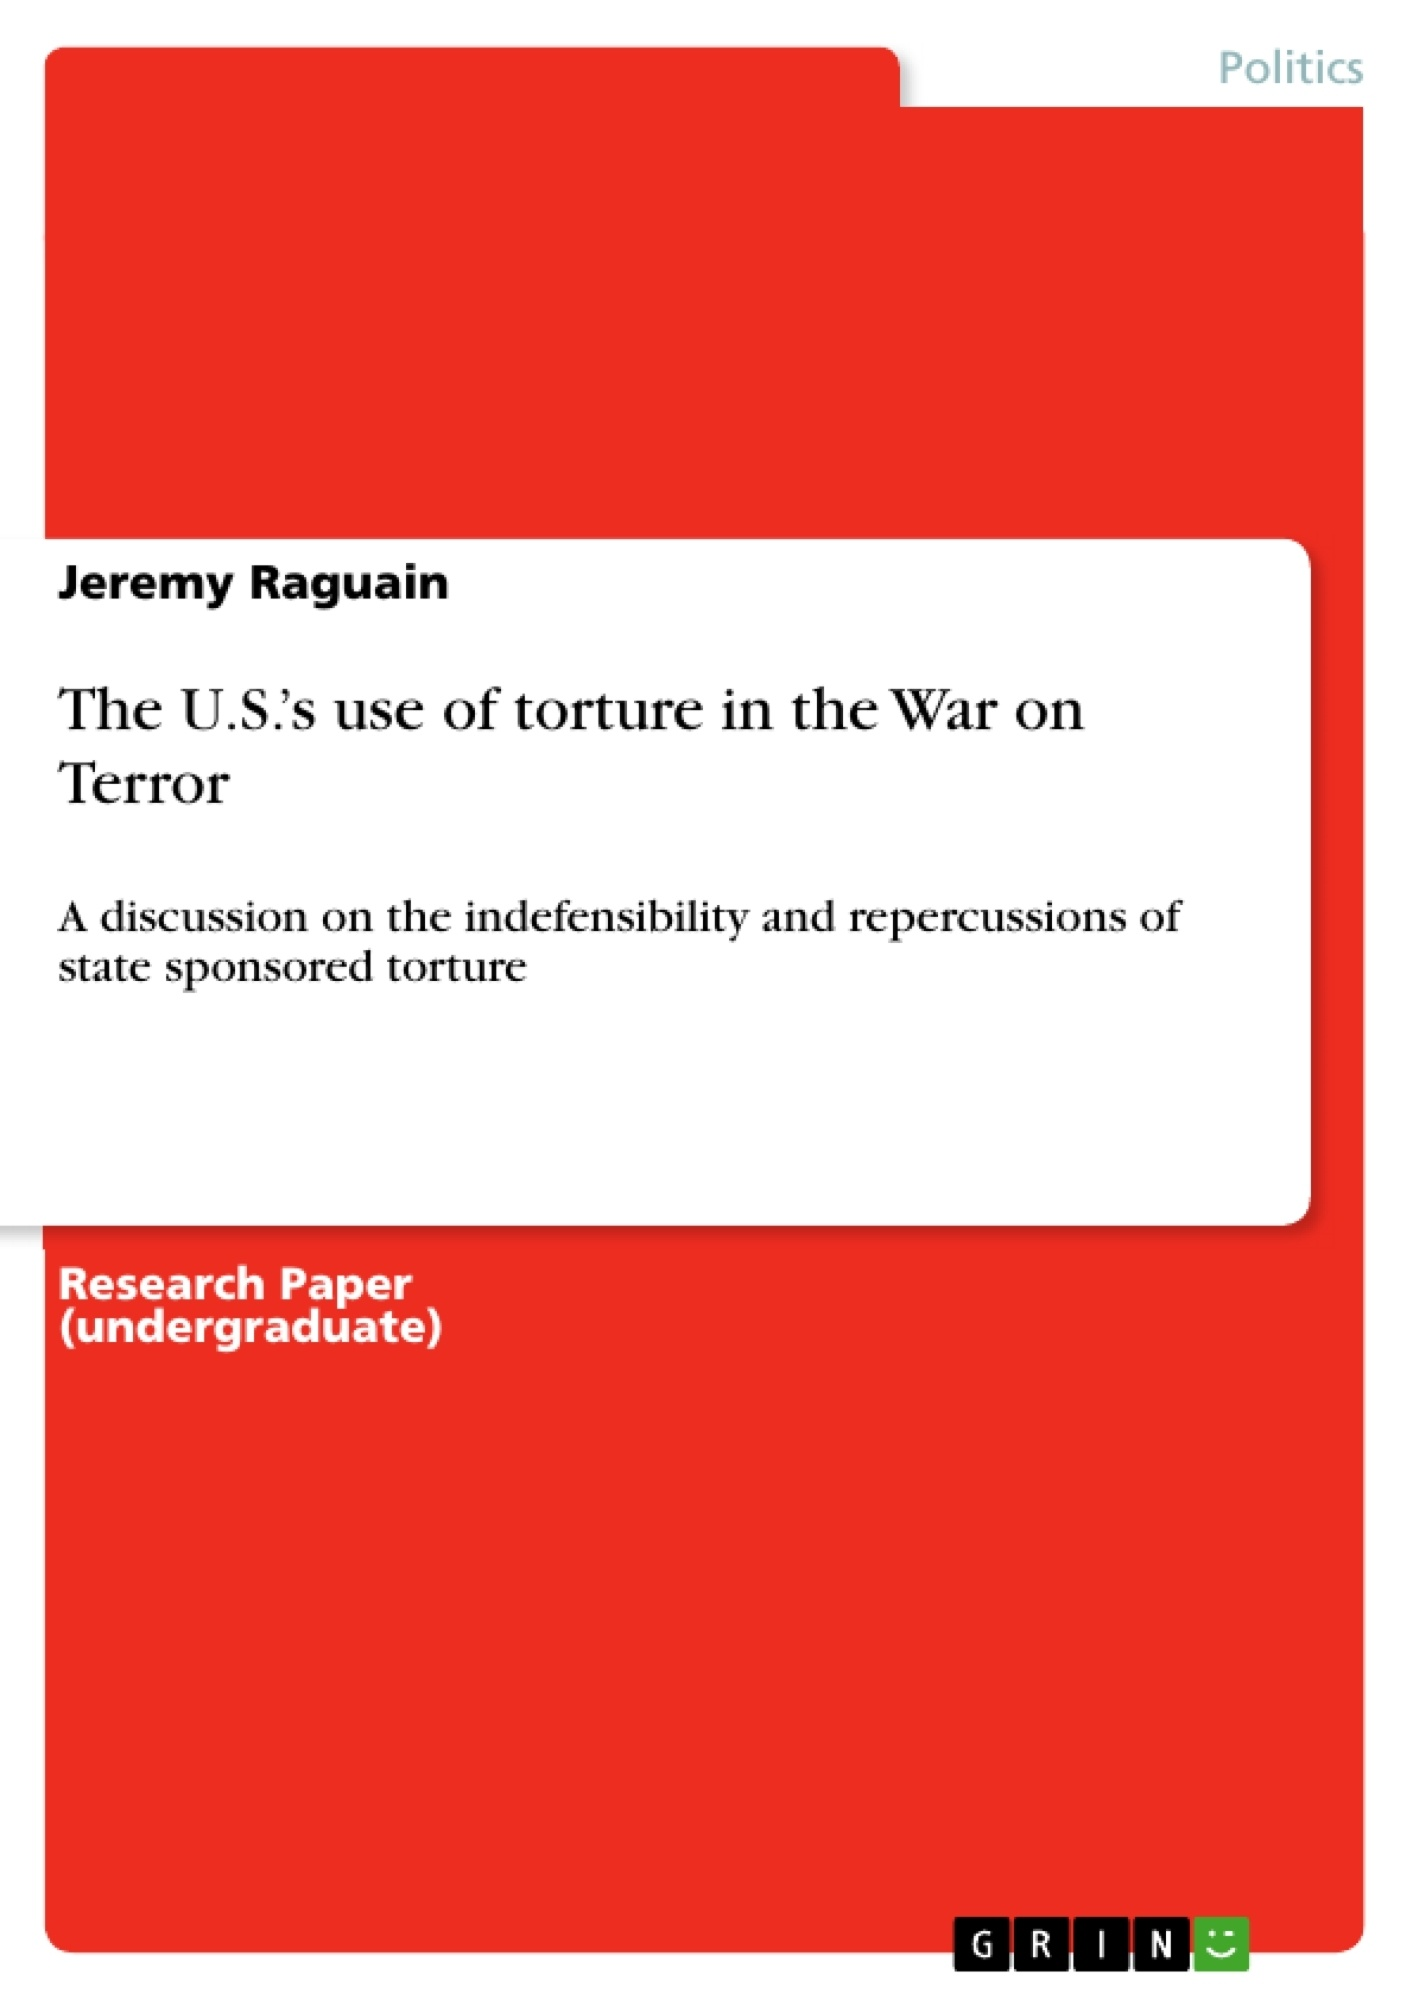 Title: The U.S.'s use of torture in the War on Terror